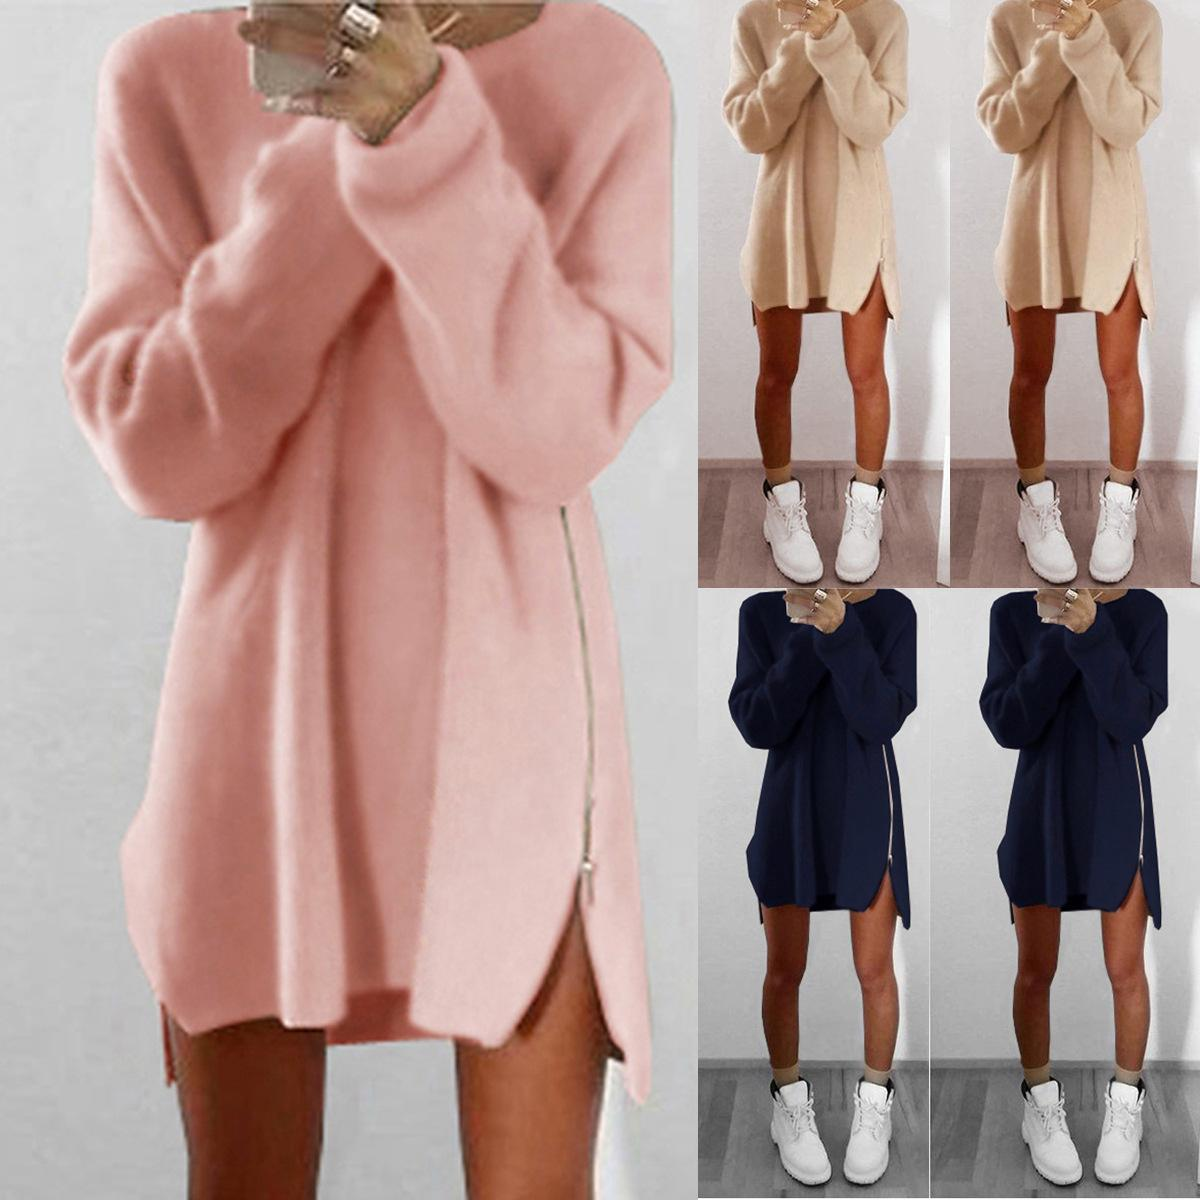 8559fe6301 2019 Sexy Womens Ladies Winter Long Sleeve Jumper Tops Fashion Girls Knitted  Oversized Baggy Sweater Casual Loose Tunic Jumpers Mini Dress From  Erinzhang